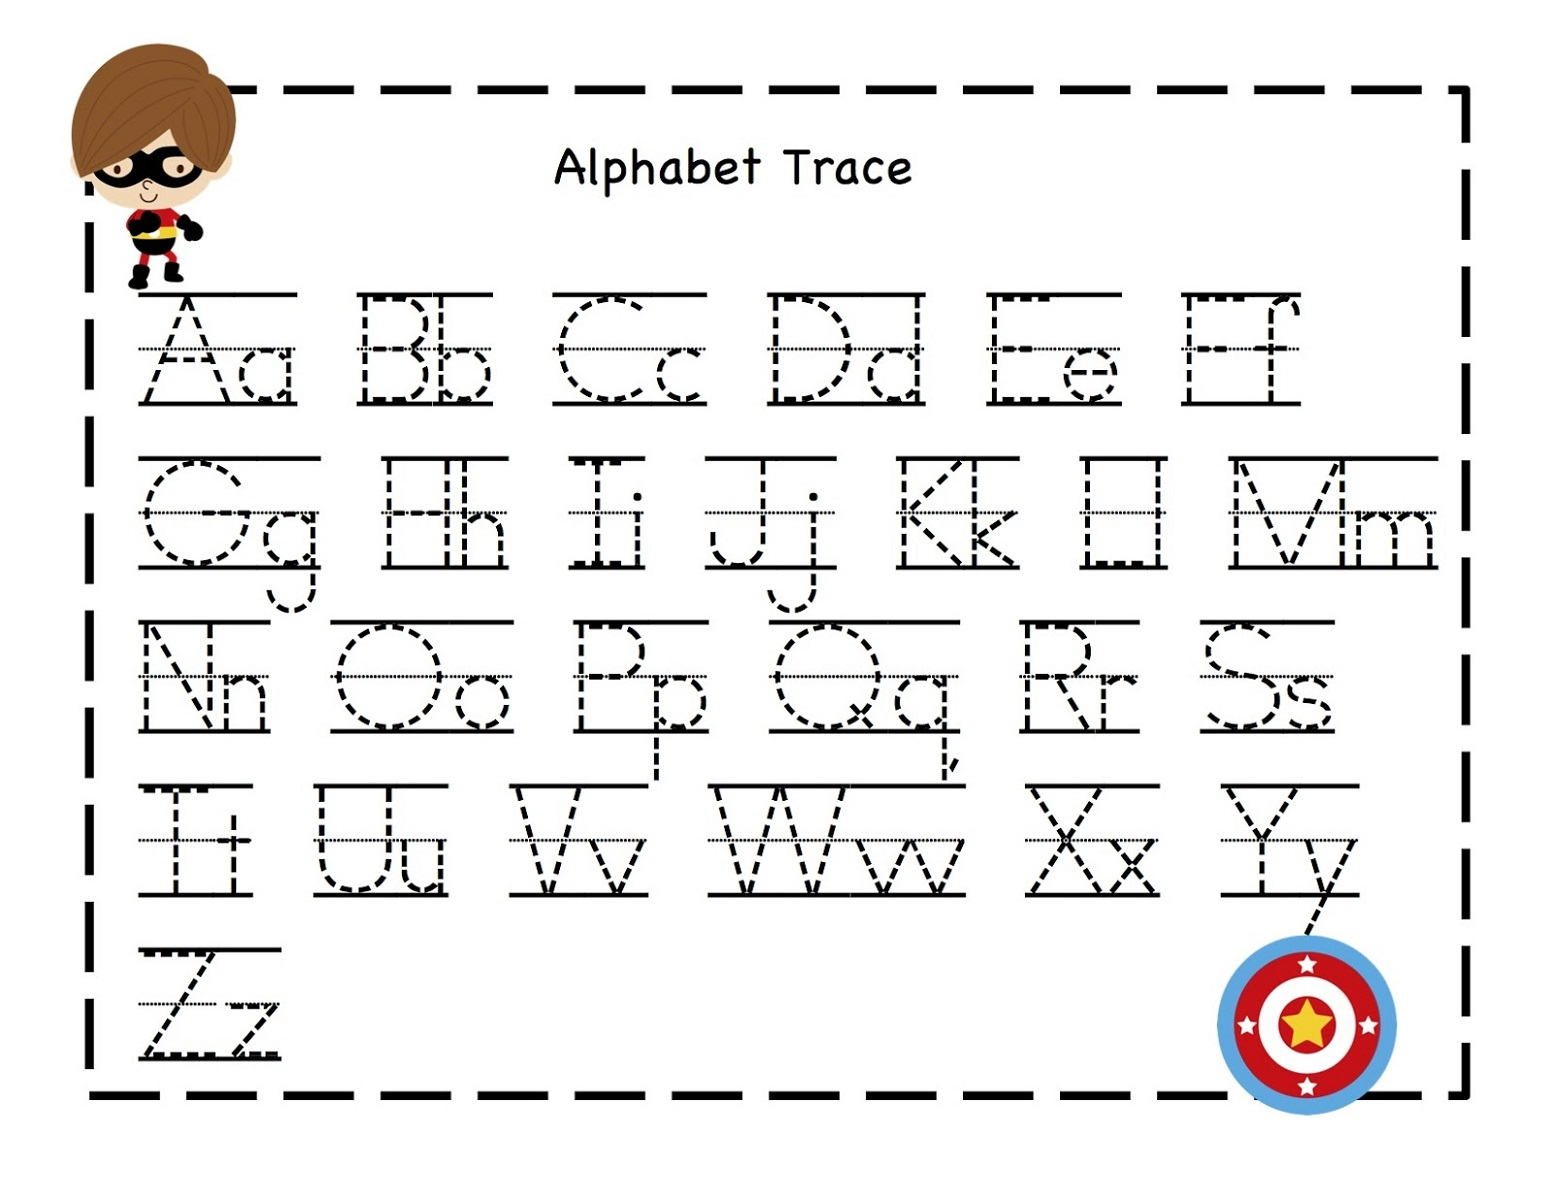 Printables Tracing The Alphabet Worksheets For Kindergarten free printable alphabet writing worksheets abc traceable for kids printable